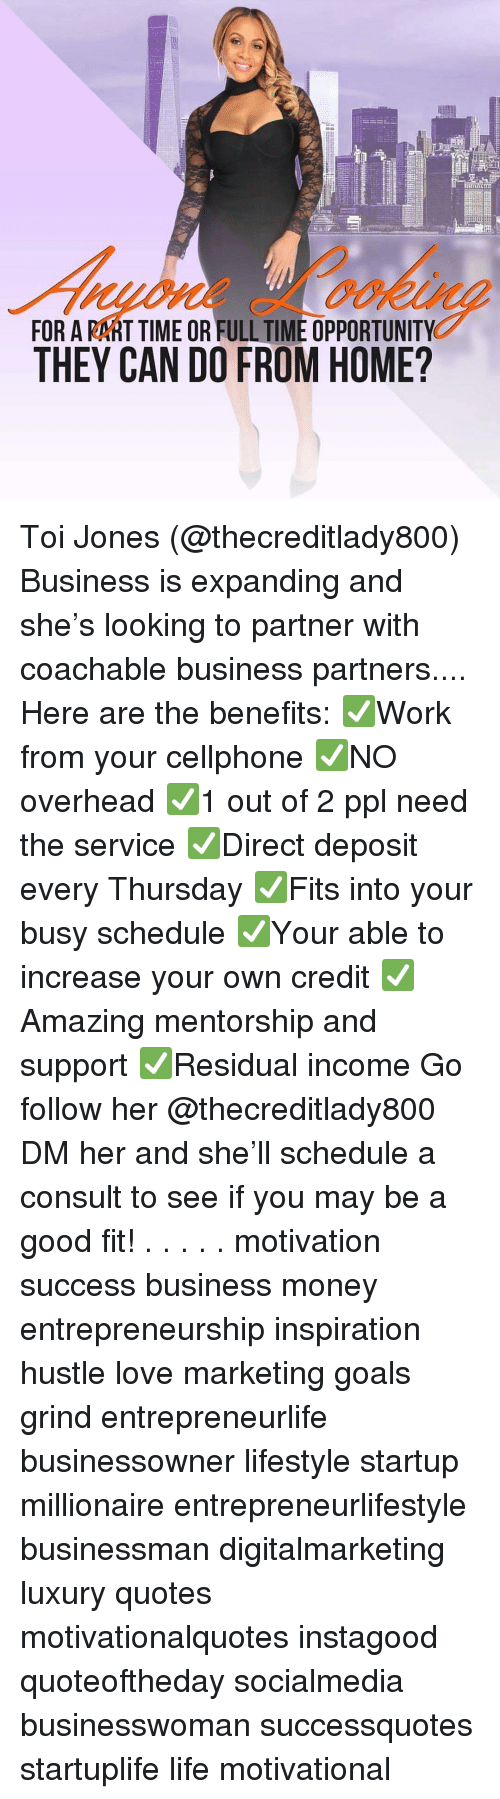 Goals, Life, and Love: FOR A RART TIME OR FULL TIME OPPORTUNITY  THEY CAN DO FROM HOME? Toi Jones (@thecreditlady800) Business is expanding and she's looking to partner with coachable business partners.... Here are the benefits: ✅Work from your cellphone ✅NO overhead ✅1 out of 2 ppl need the service ✅Direct deposit every Thursday ✅Fits into your busy schedule ✅Your able to increase your own credit ✅Amazing mentorship and support ✅Residual income Go follow her @thecreditlady800 DM her and she'll schedule a consult to see if you may be a good fit! . . . . . motivation success business money entrepreneurship inspiration hustle love marketing goals grind entrepreneurlife businessowner lifestyle startup millionaire entrepreneurlifestyle businessman digitalmarketing luxury quotes motivationalquotes instagood quoteoftheday socialmedia businesswoman successquotes startuplife life motivational